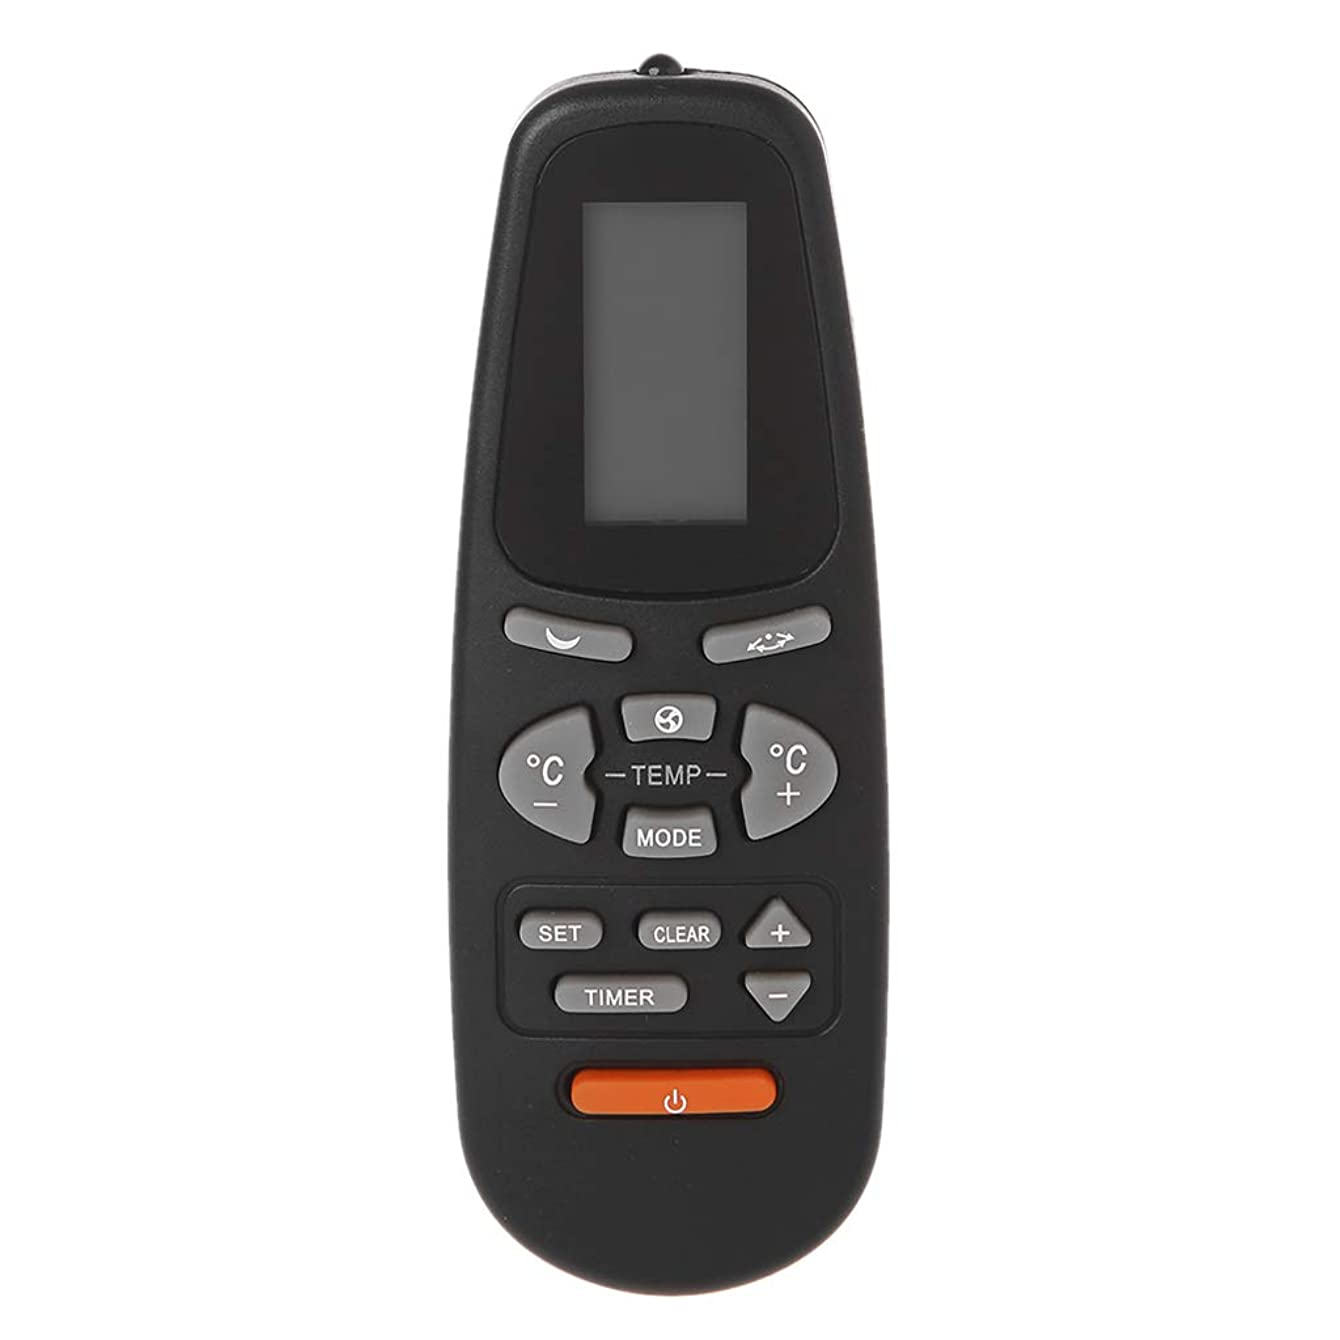 Sixsons Air Conditioner Remote Control RC-5 Air Conditioner Digital Remote Keyboard for York Airwell Emailair Electra Elco Aux